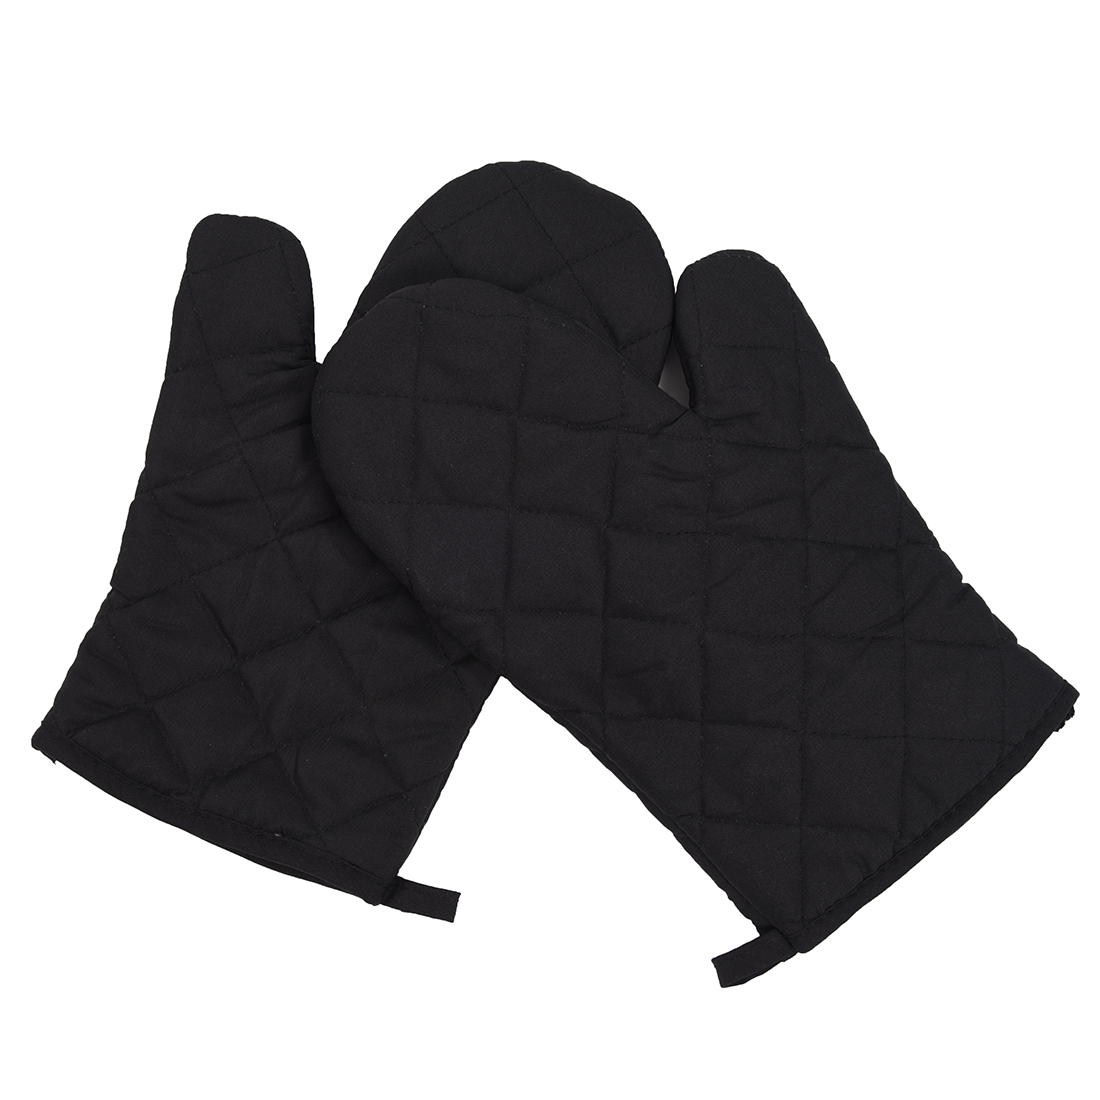 White pot holders for crafts - 1 Pair Kitchen Craft Heat Resistant Cotton Oven Glove Pot Holder Baking Cooking Mitts Black